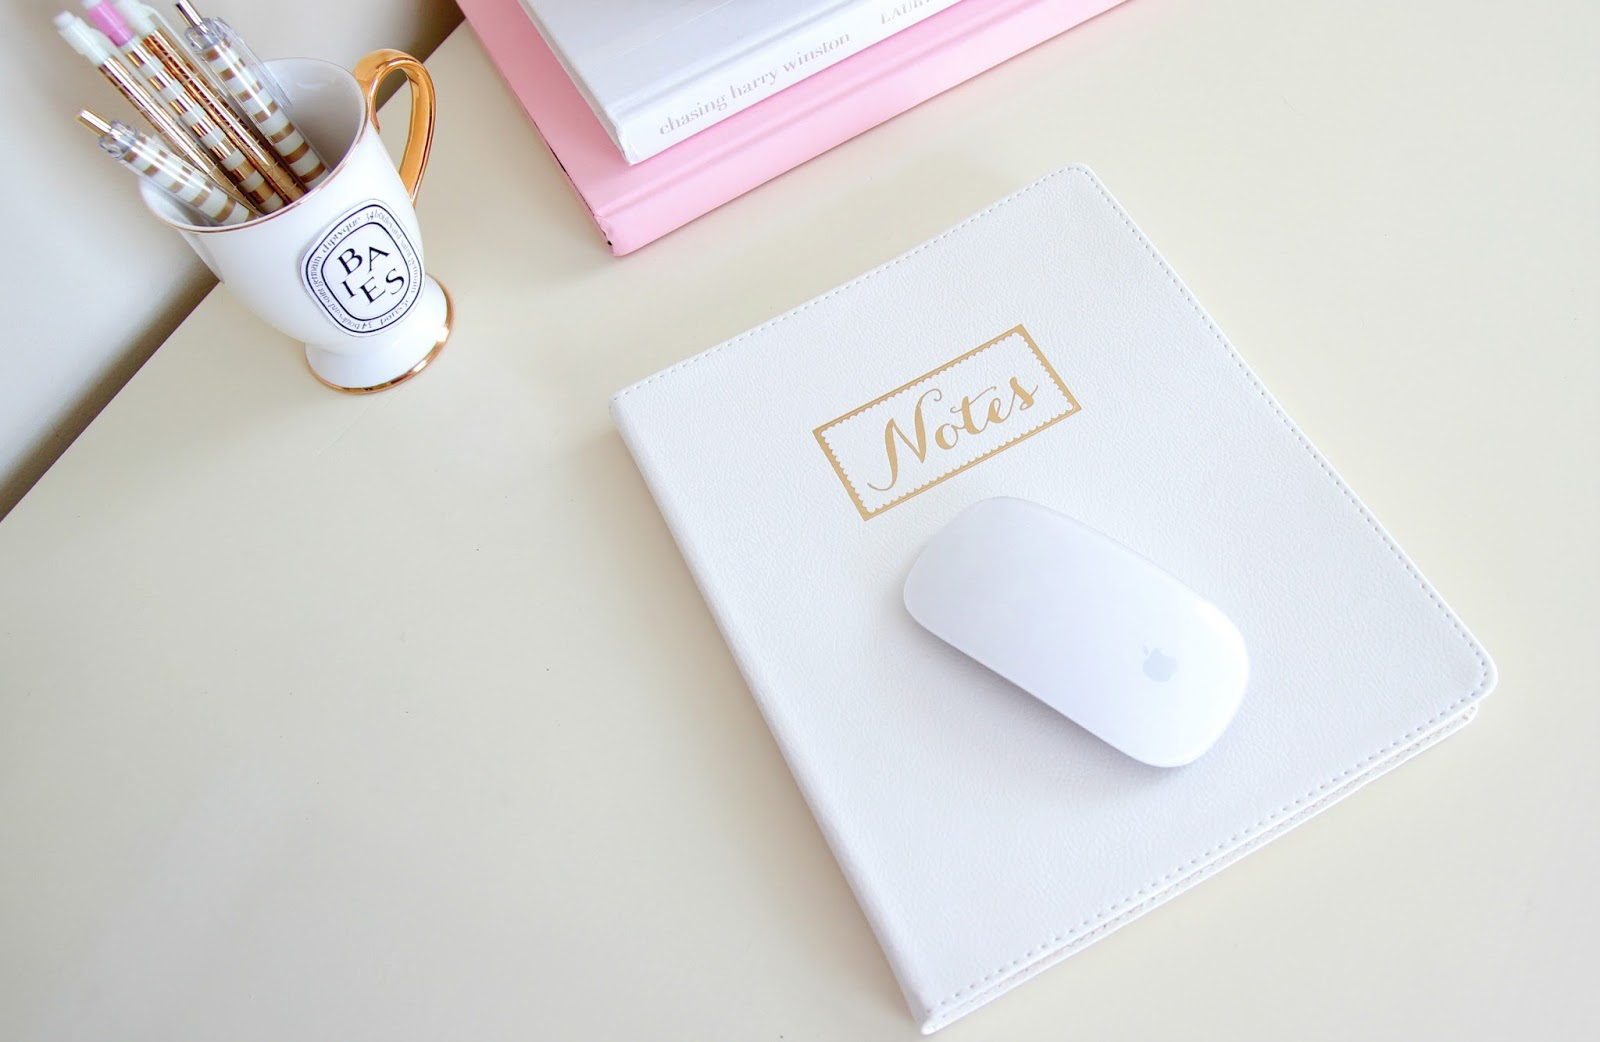 Desk Organization - Tj Maxx Notebook - Girly Desk - Ikea Desk - Desk Decor